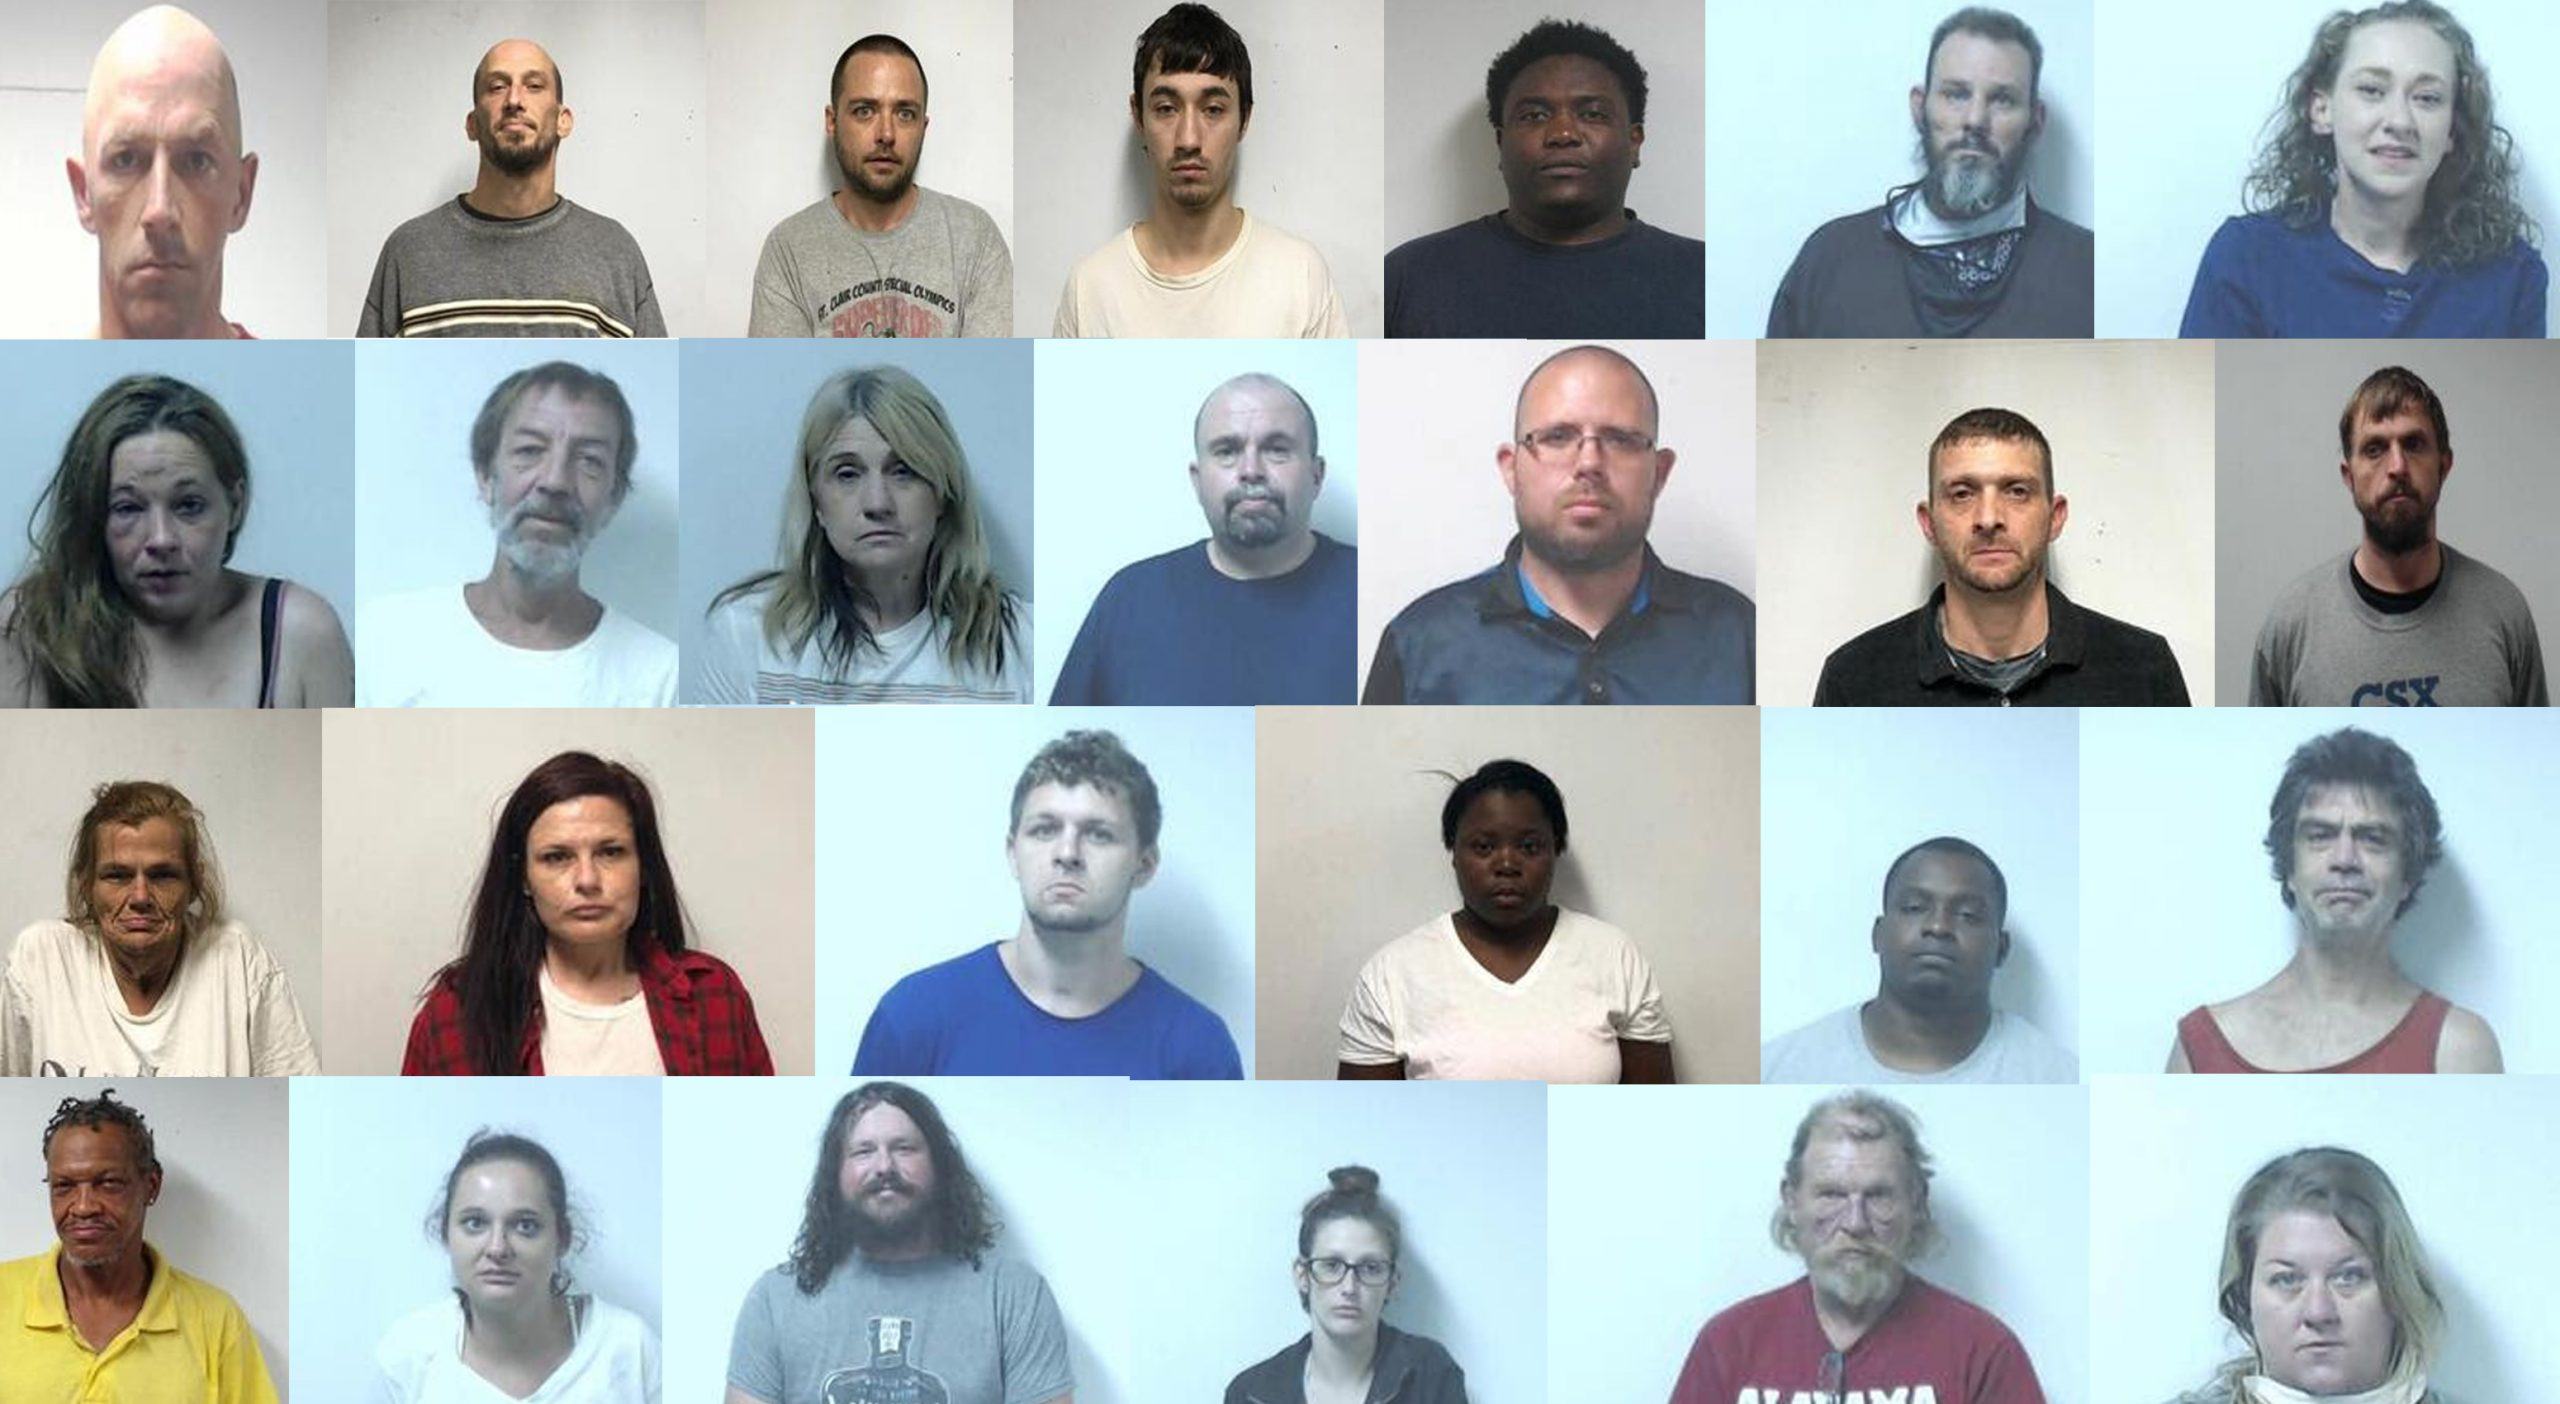 St. Clair County Jail Inmate Roster: Thursday, July 16, 2020